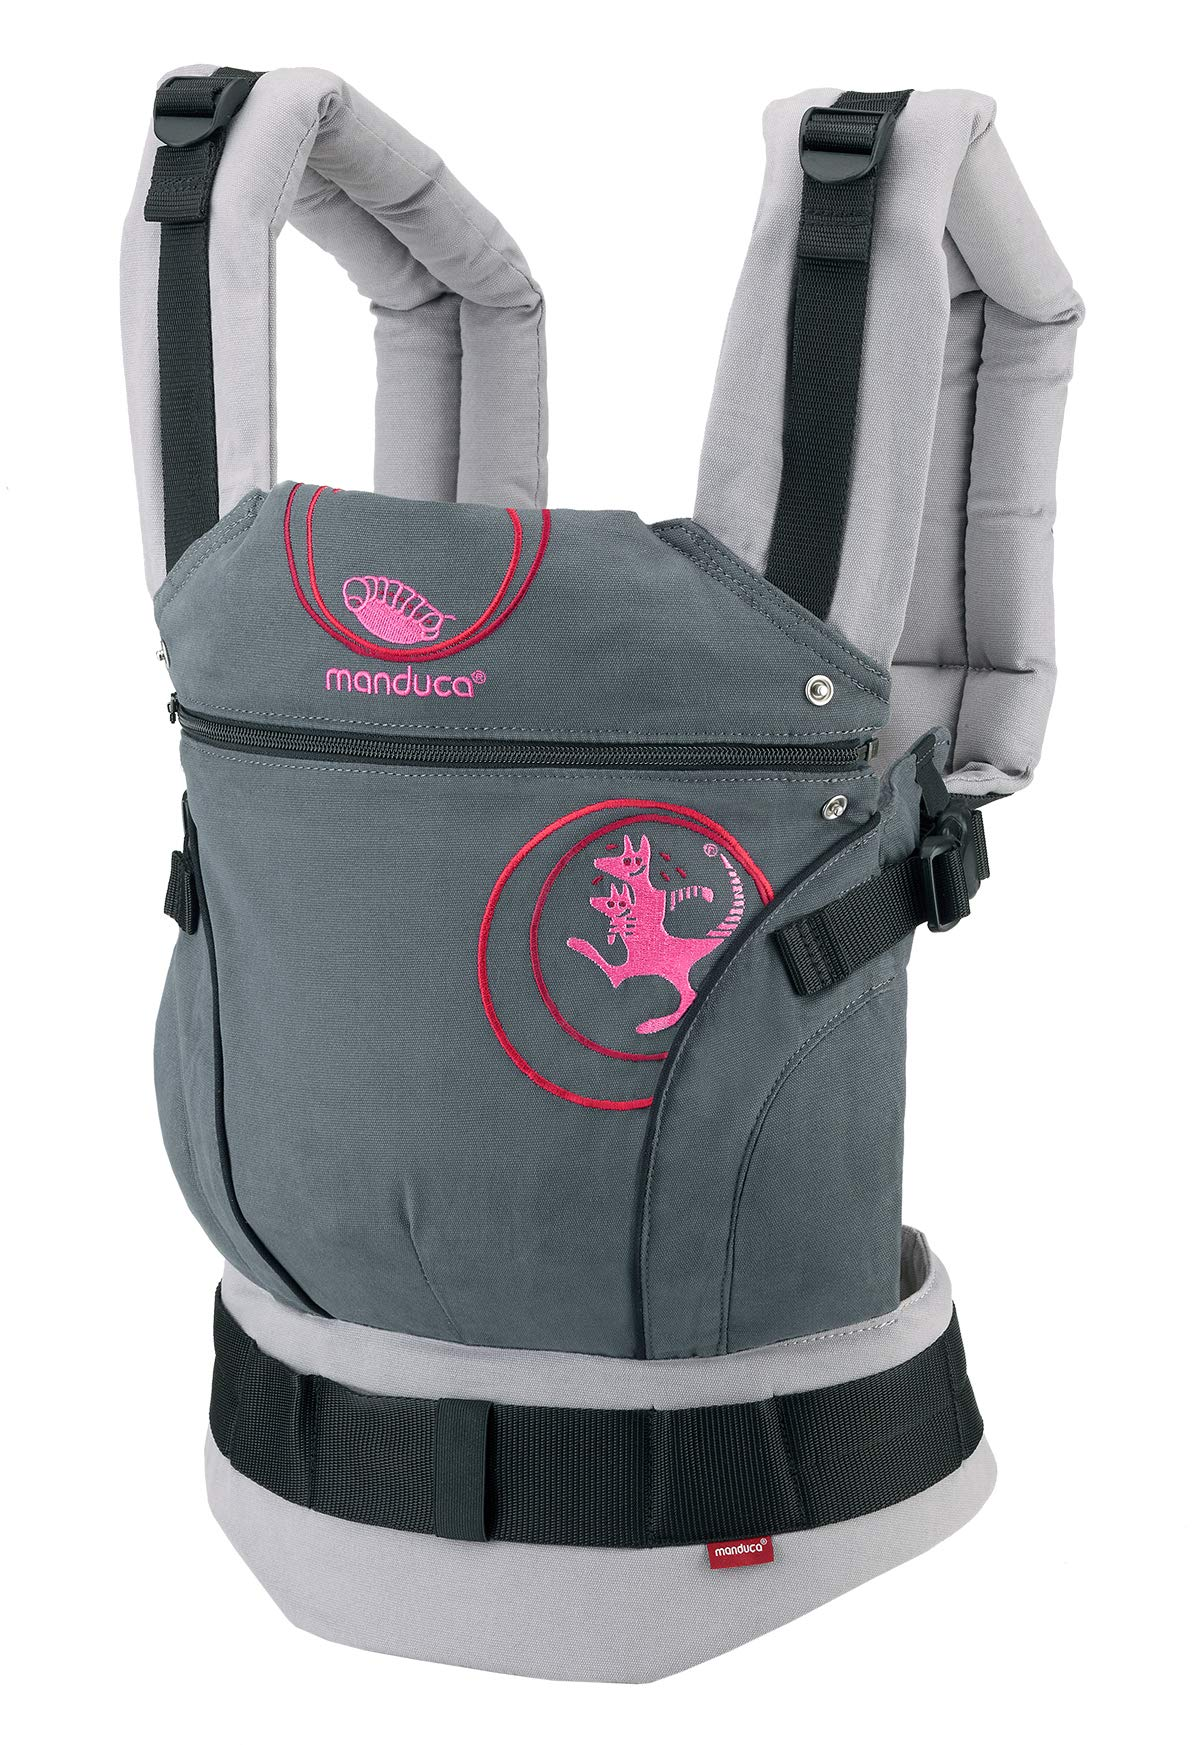 817kolLMJzL - manduca First Baby Carrier > PureCotton < Mochila Portabebe Ergonomica, Algodón Orgánico, Extensión de Espalda Patentada, para Recién Nacidos y Bebés de 3,5 a 20 kg